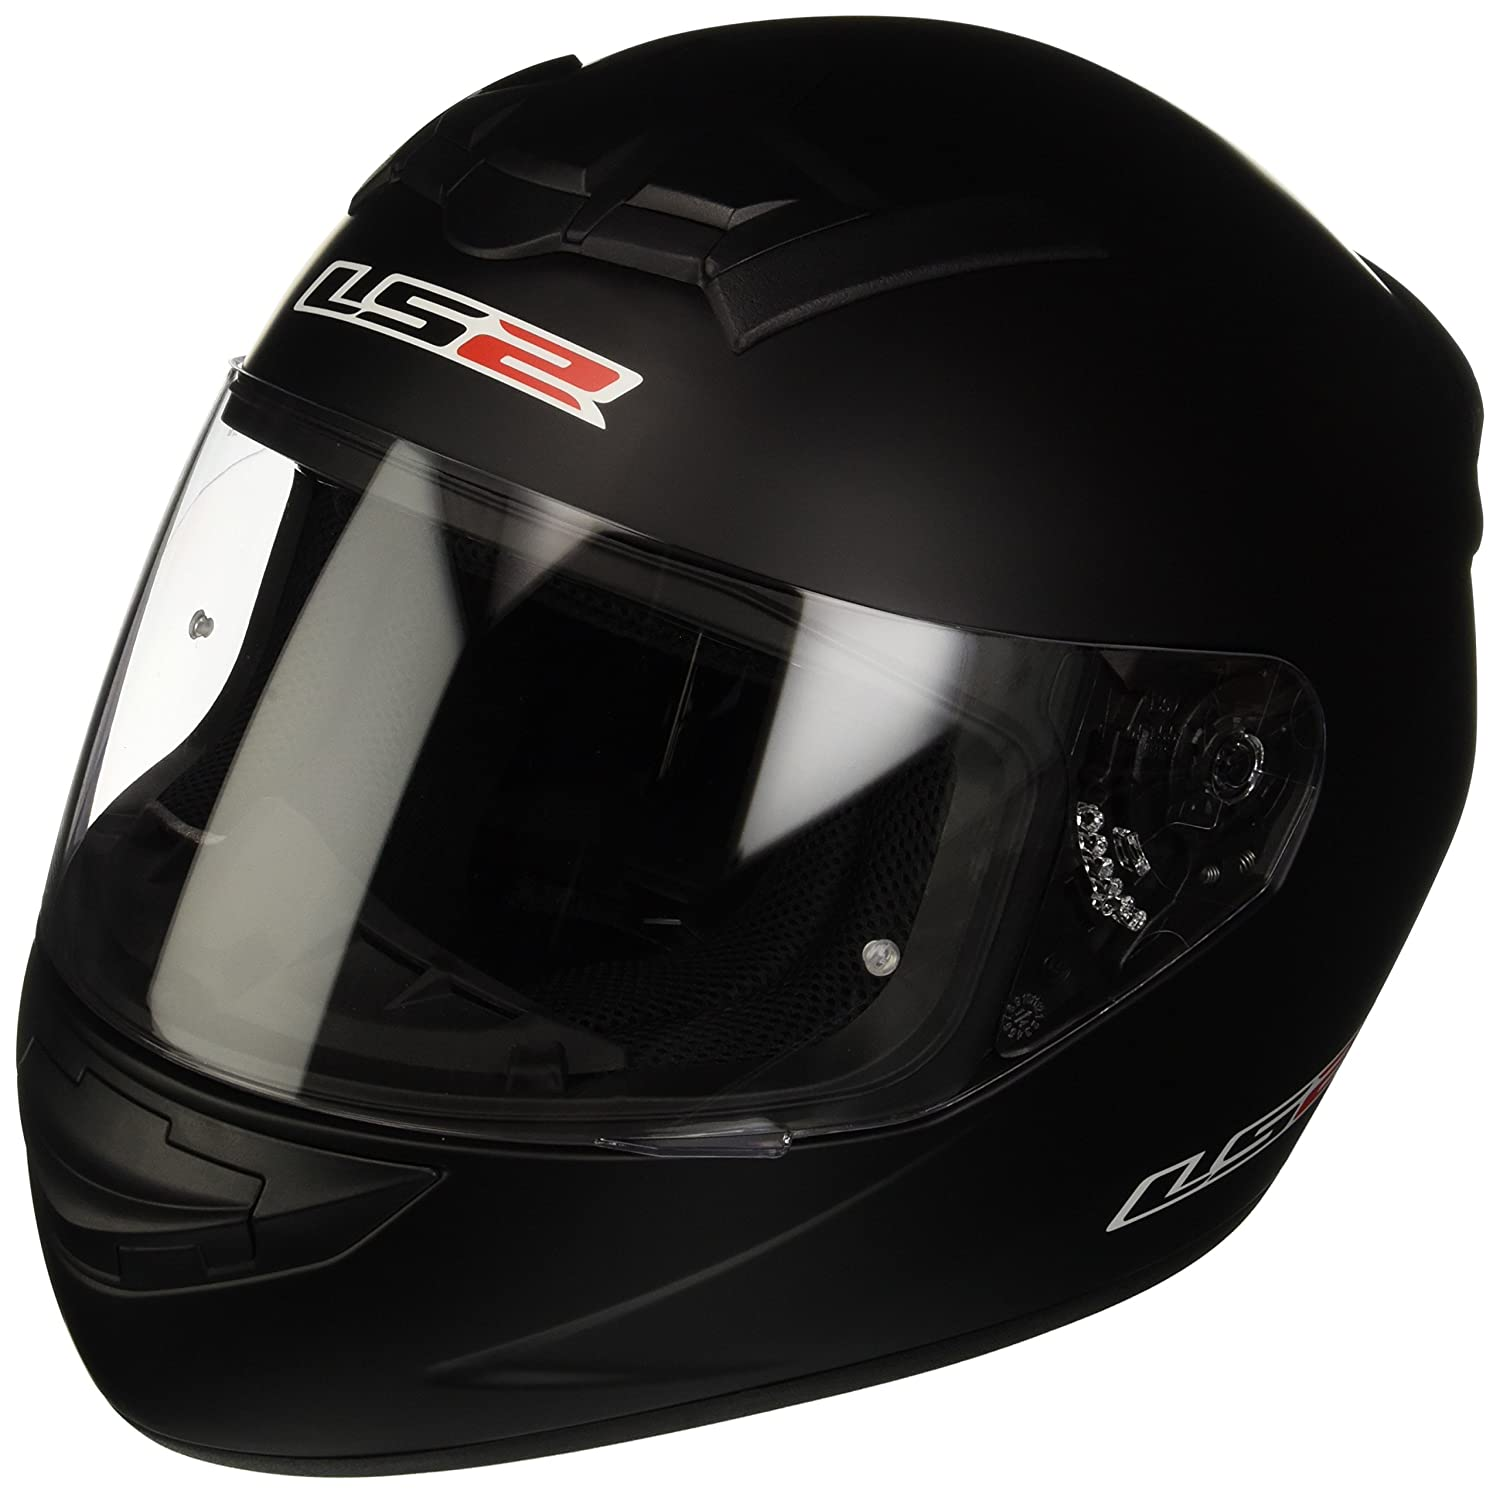 Amazon.es: LS2 103521011M FF352 Casco Rookie Solid, Color Negro Mate, Tamaño M